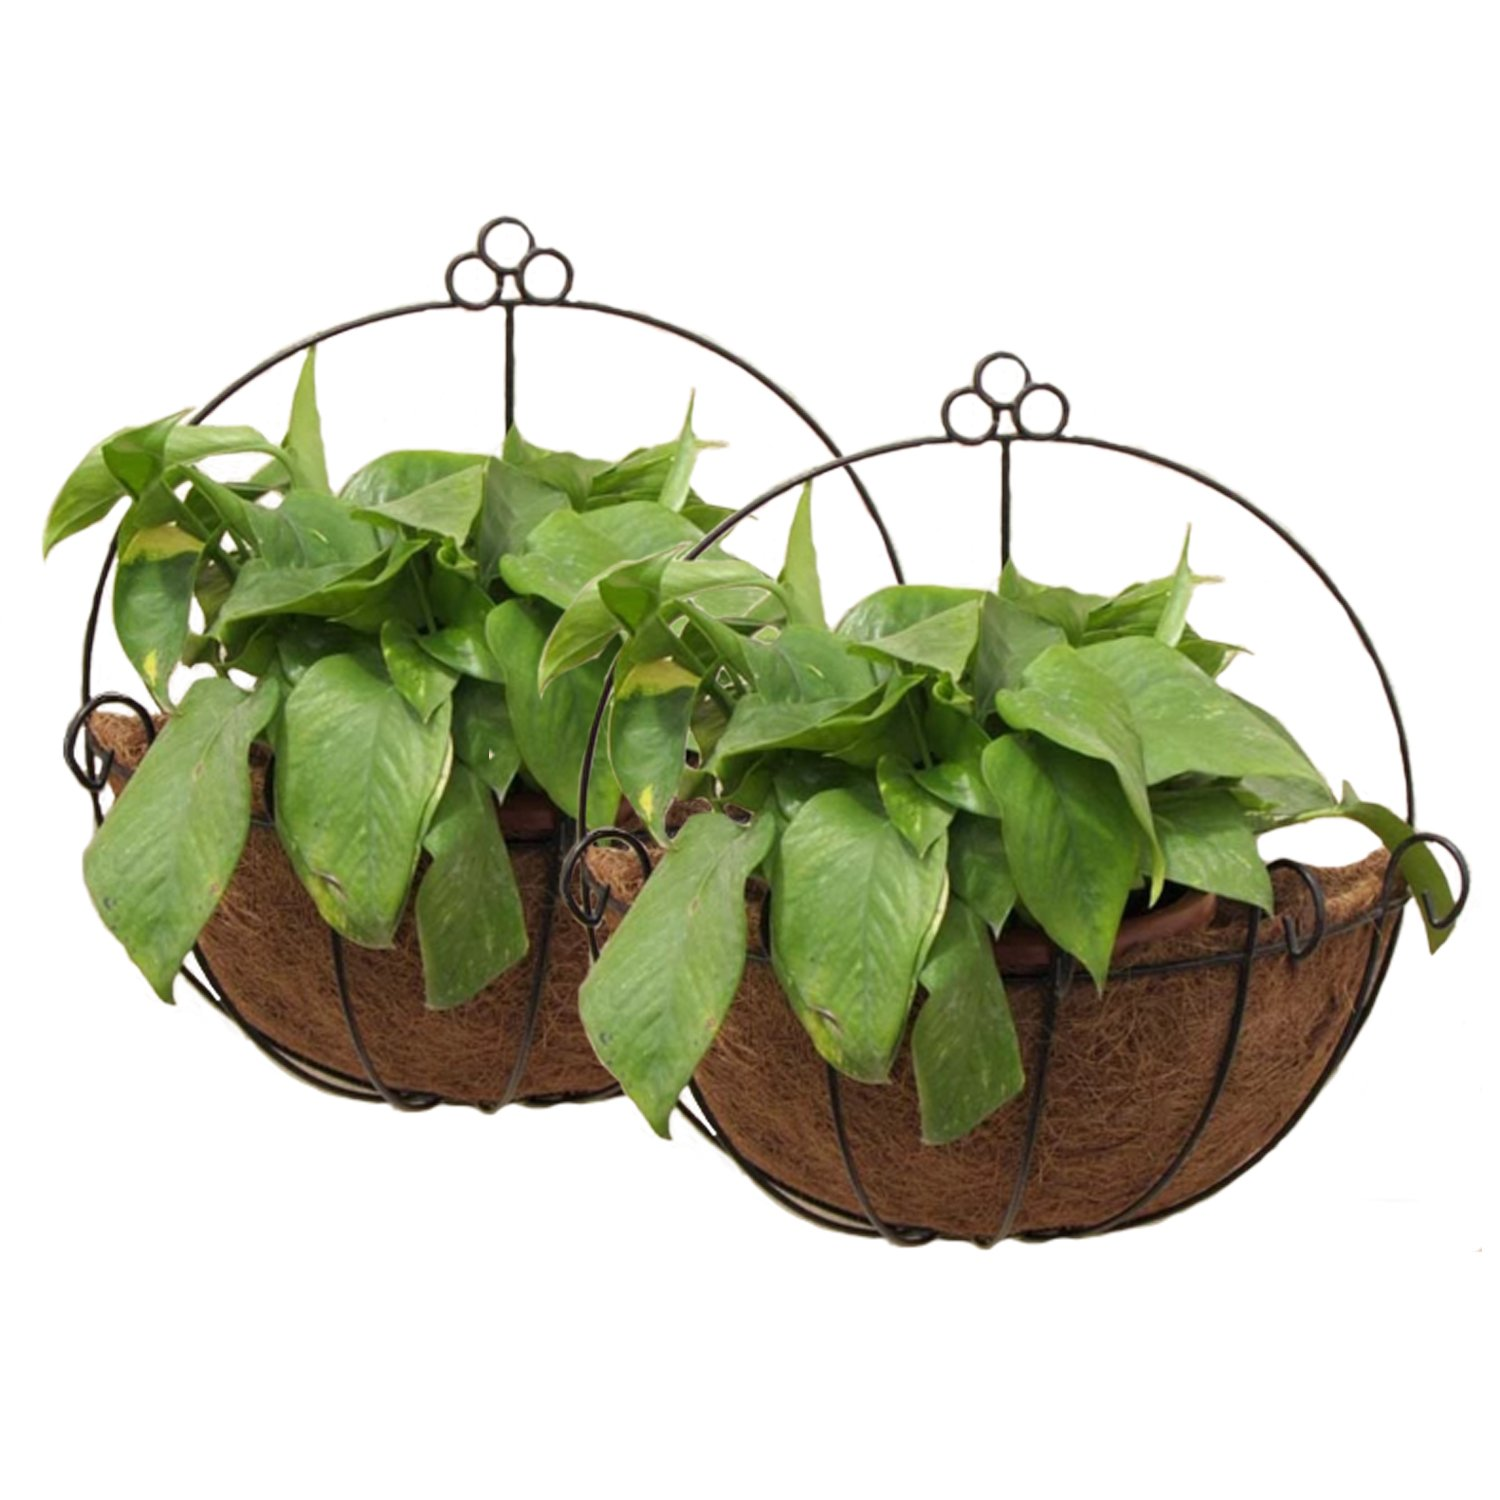 Tosnail PVC Coated Metal Wall Hanging Planter Basket with Coco Liner - Great for Indoor or Outdoor Plants - Pack of 2 by Tosnail